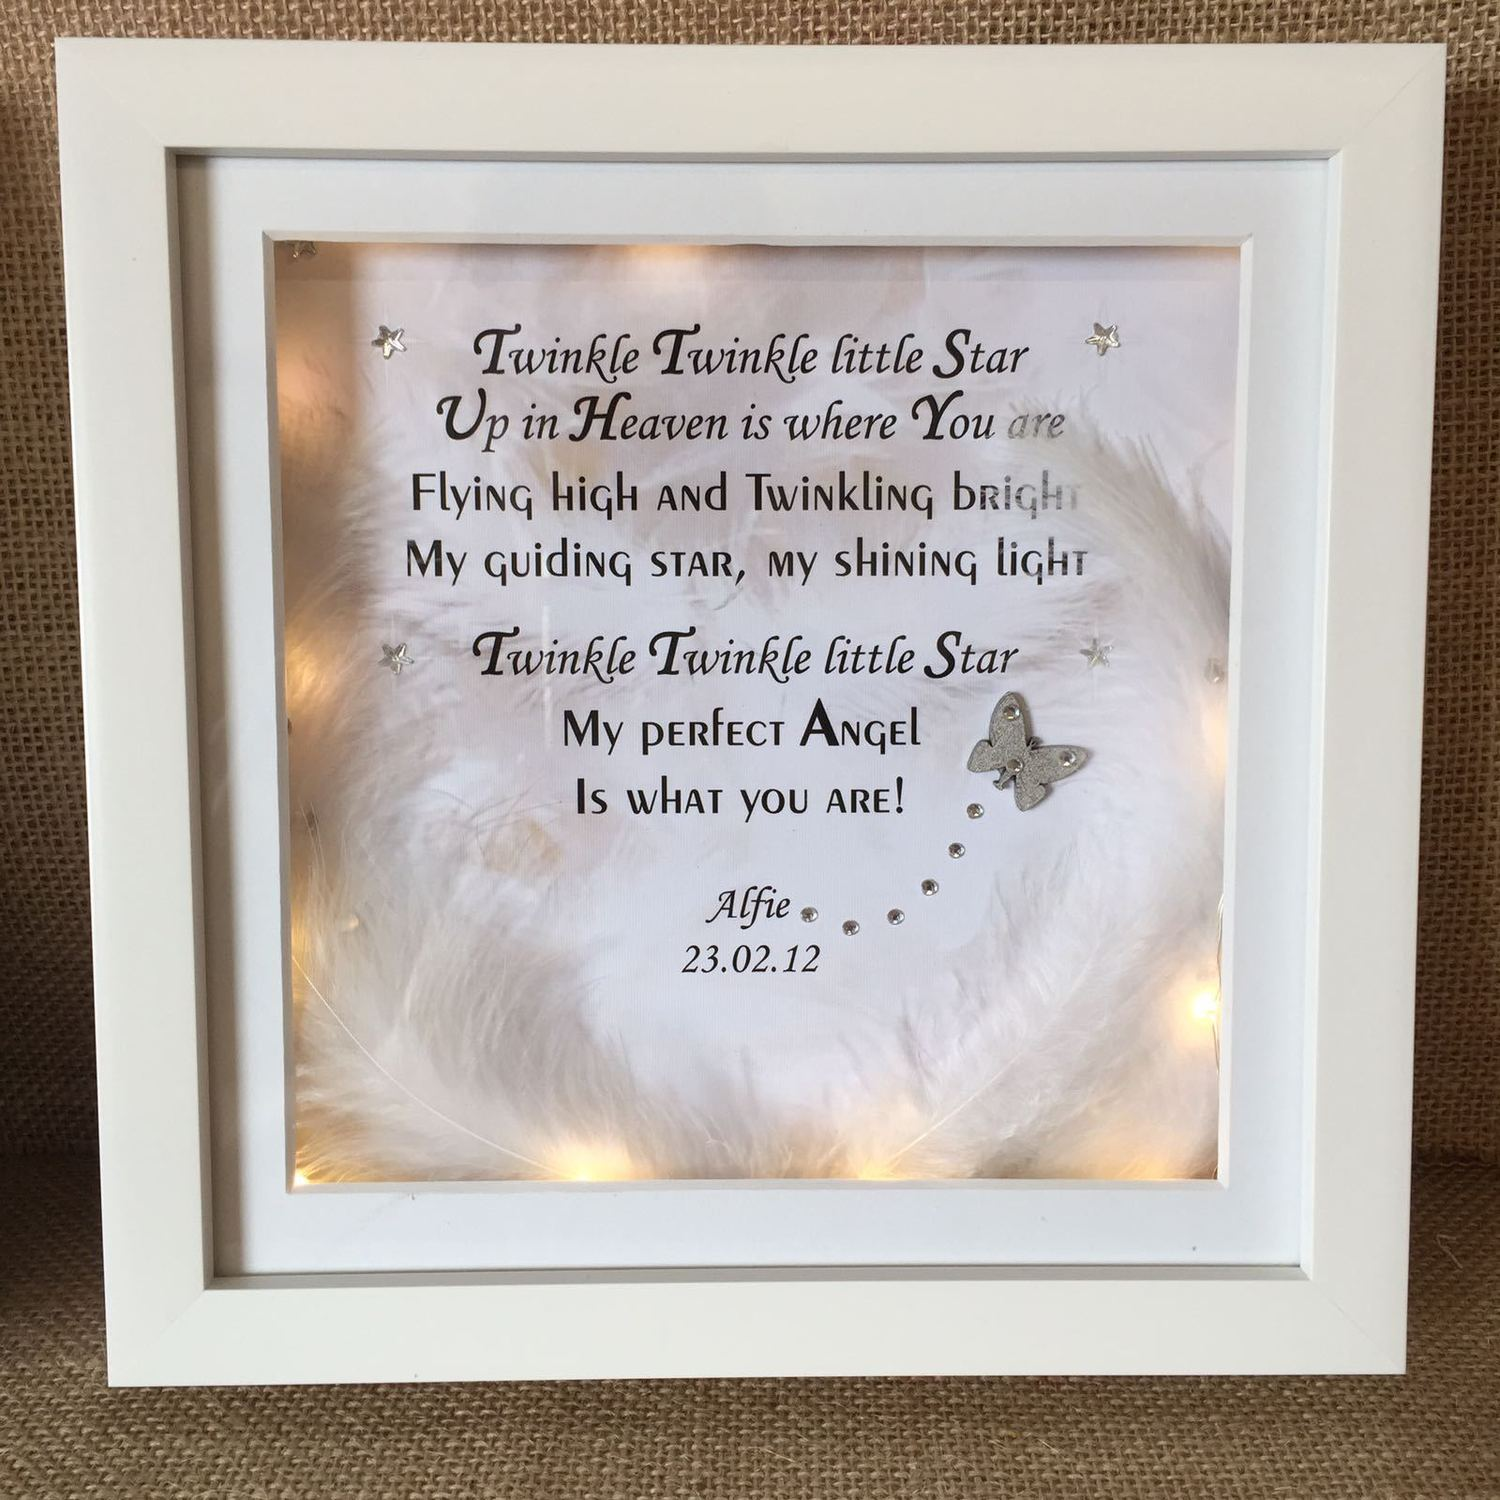 Twinkle Twinkle Little Star Crafty Monkey Personalised Gifts For